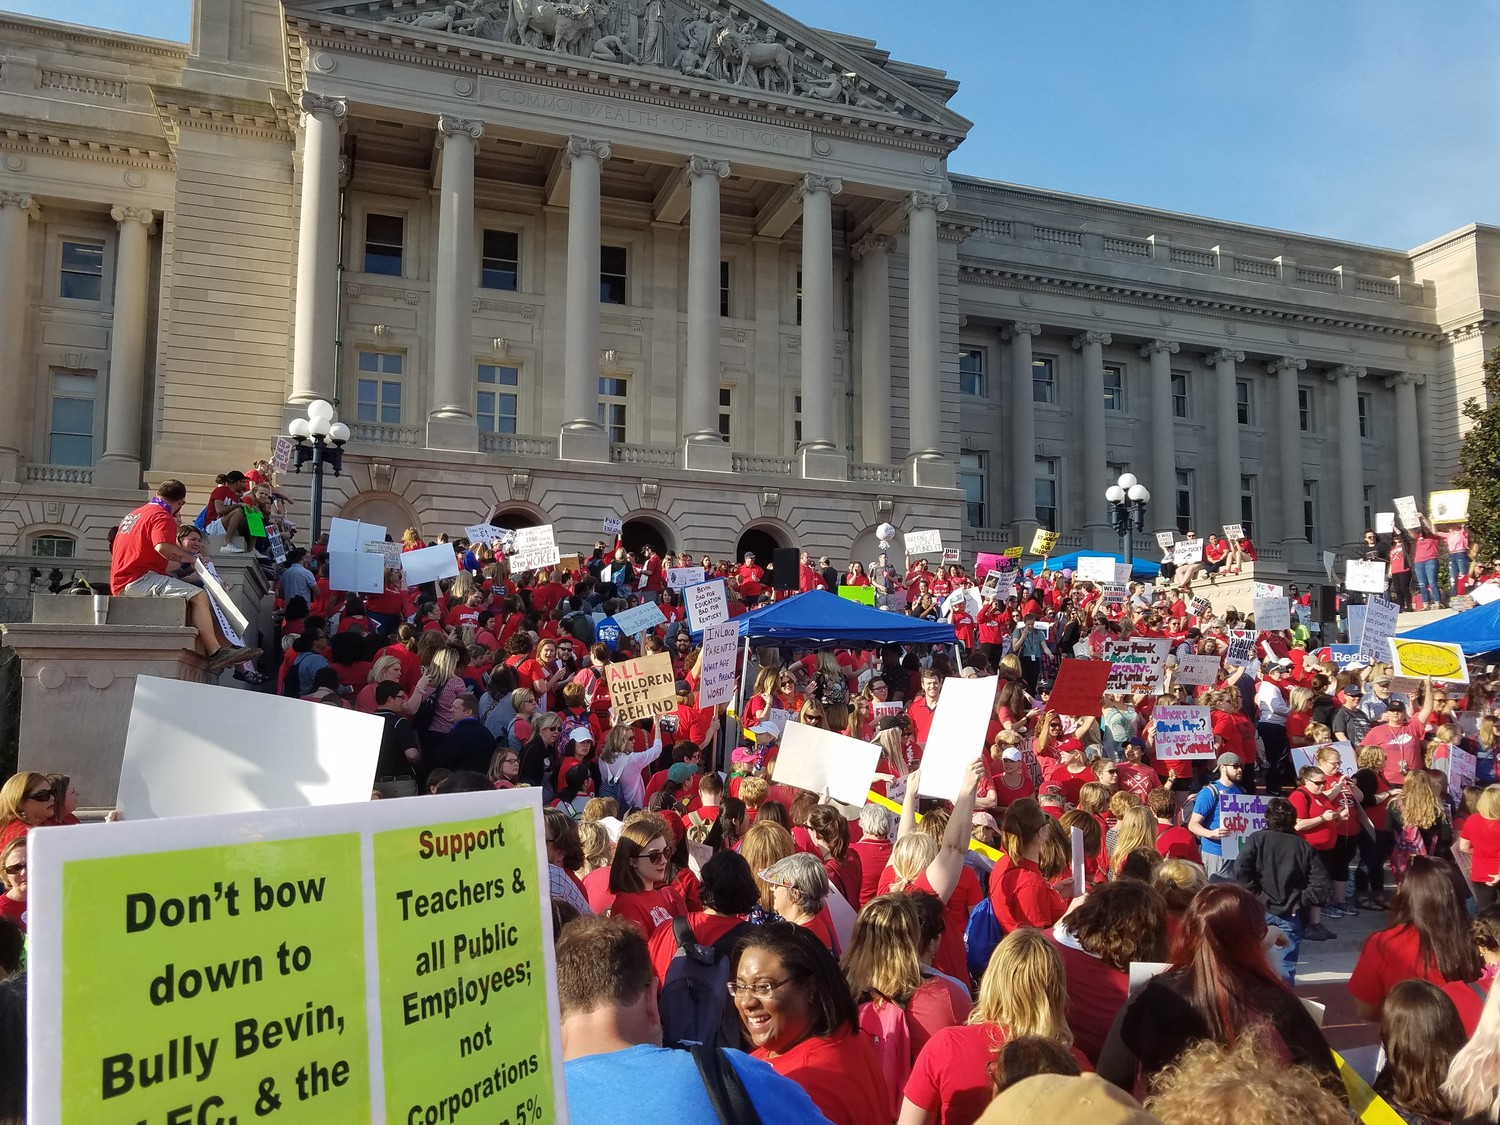 Teachers protest the pension overhaul at the Capitol in April. A Franklin Circuit judge has ruled the law unconstitutional. (Kentucky Today / Tom Latek)